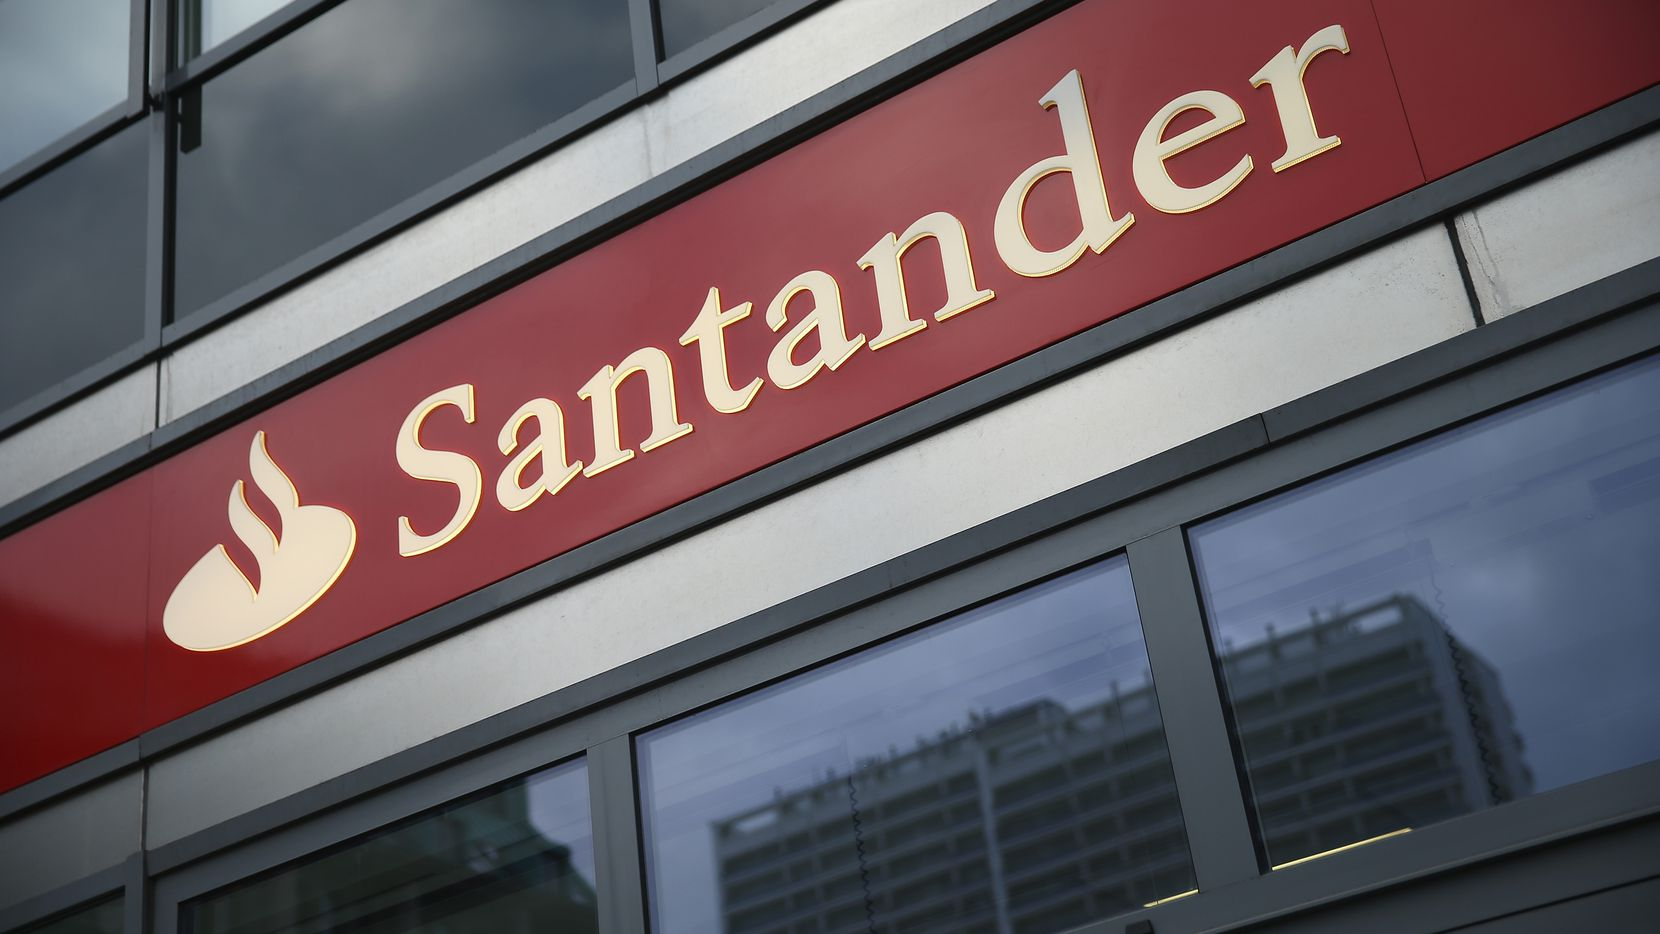 BERLIN, GERMANY - JANUARY 17:  The logo of Spanish bank Santander hangs at a branch on January 17, 2014 in Berlin, Germany. Banks across Europe will be announcing their financial results for 2013 in annual press conferences in coming weeks.  (Photo by Sean Gallup/Getty Images)